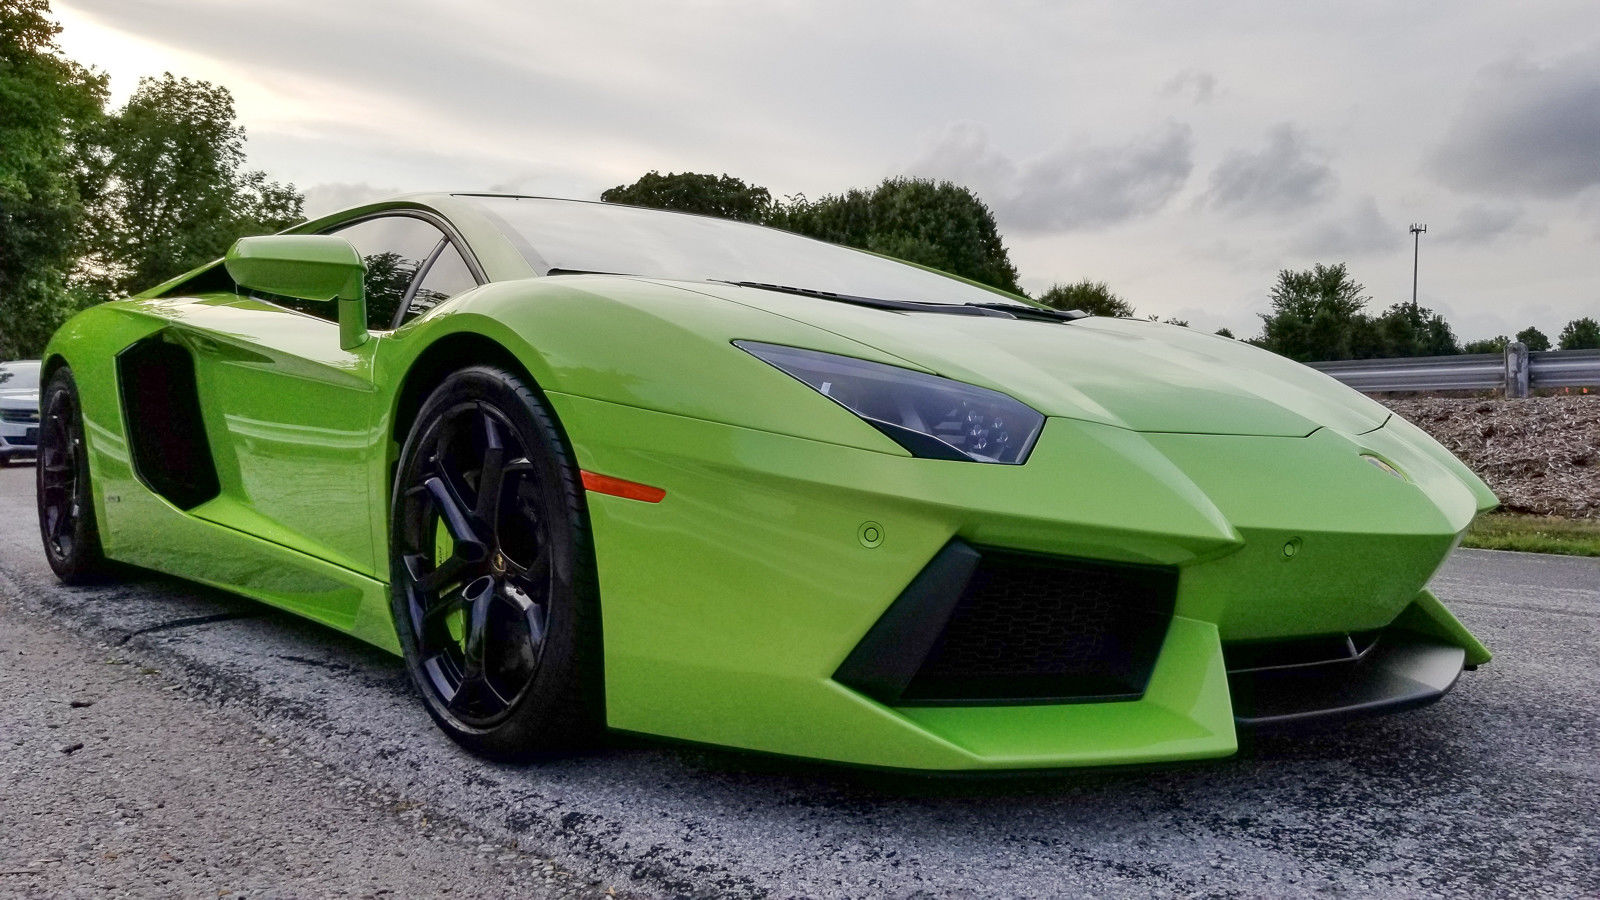 Used Tesla Model S For Sale >> Awesome 2013 Lamborghini Aventador LP700-4 Verde Ithaca / Nero Ade, Iperione Wheels, Carbon ...